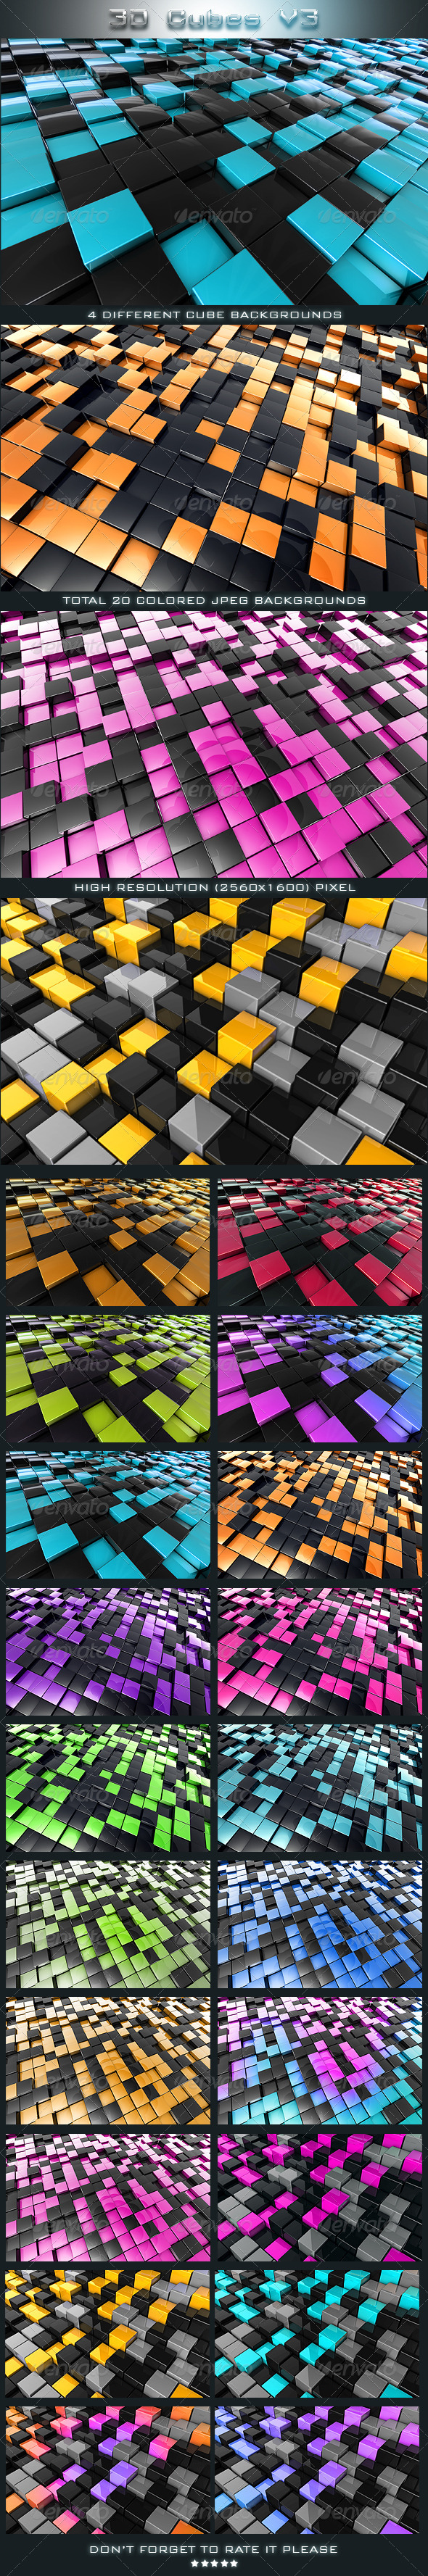 3D Cubes V3 - 3D Backgrounds